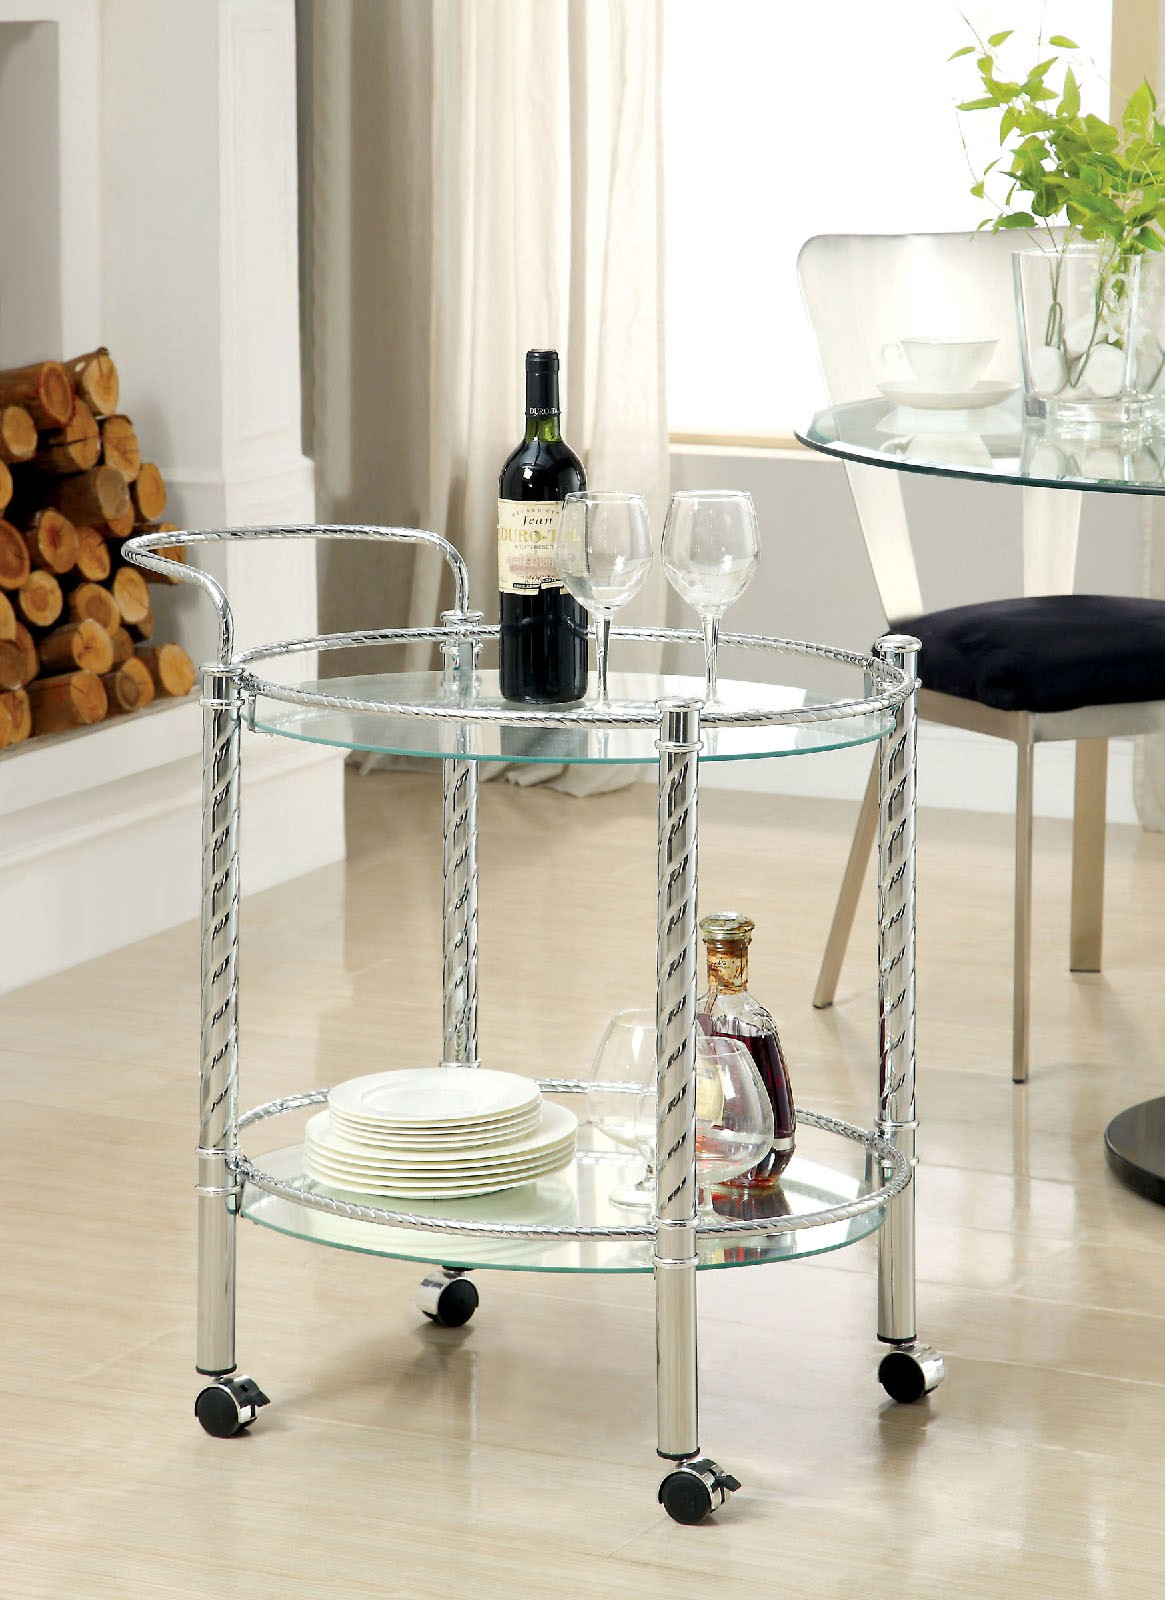 1PerfectChoice Traco Contemporary Style Round Serving Cart Castors Chrome Base Glass Shelves by 1PerfectChoice